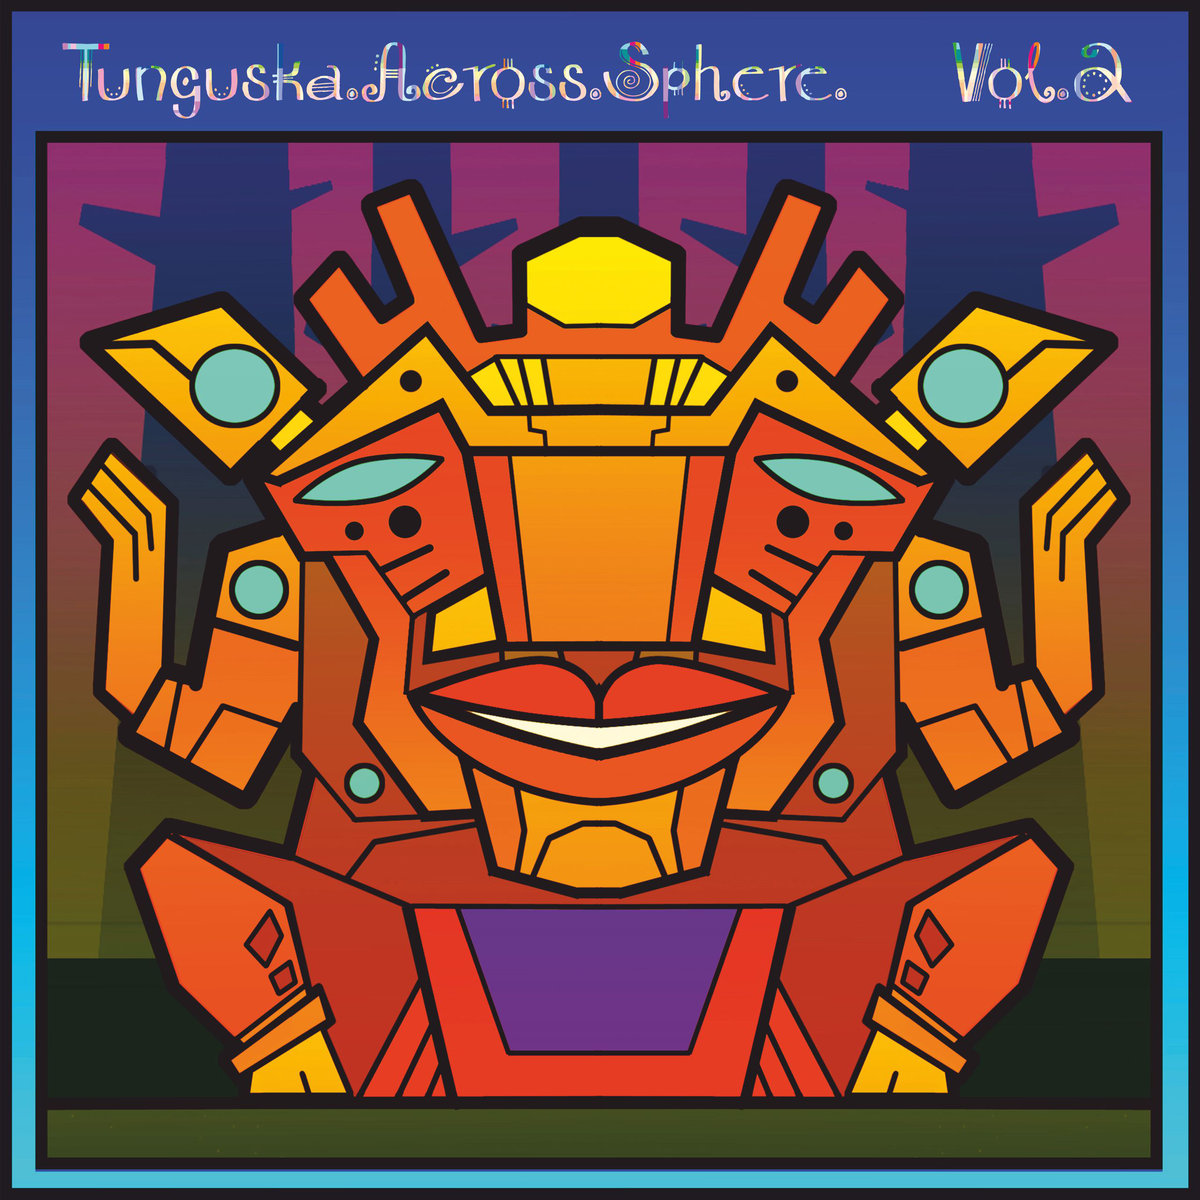 Vospi - Lost and Found @ 'Ellipsis II - Tunguska.Across.Sphere. Vol.2' album (electronic, ambient)